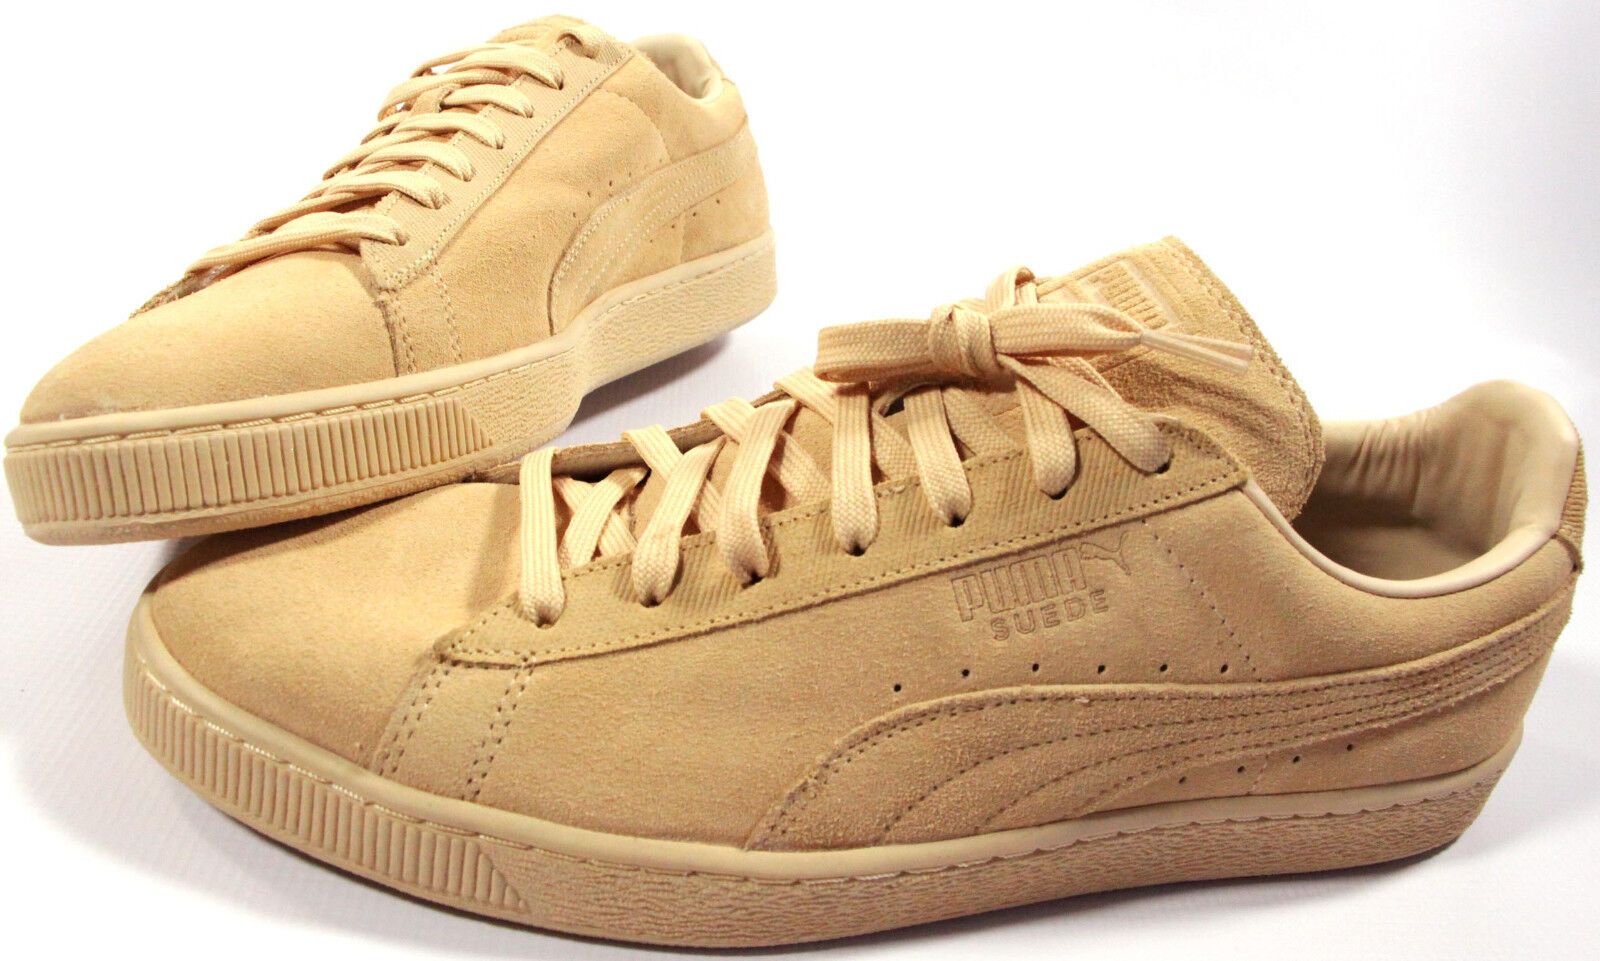 PUMA Suede Classic Tonal shoes- 12- NEW- natural beige retro leather Sneakers